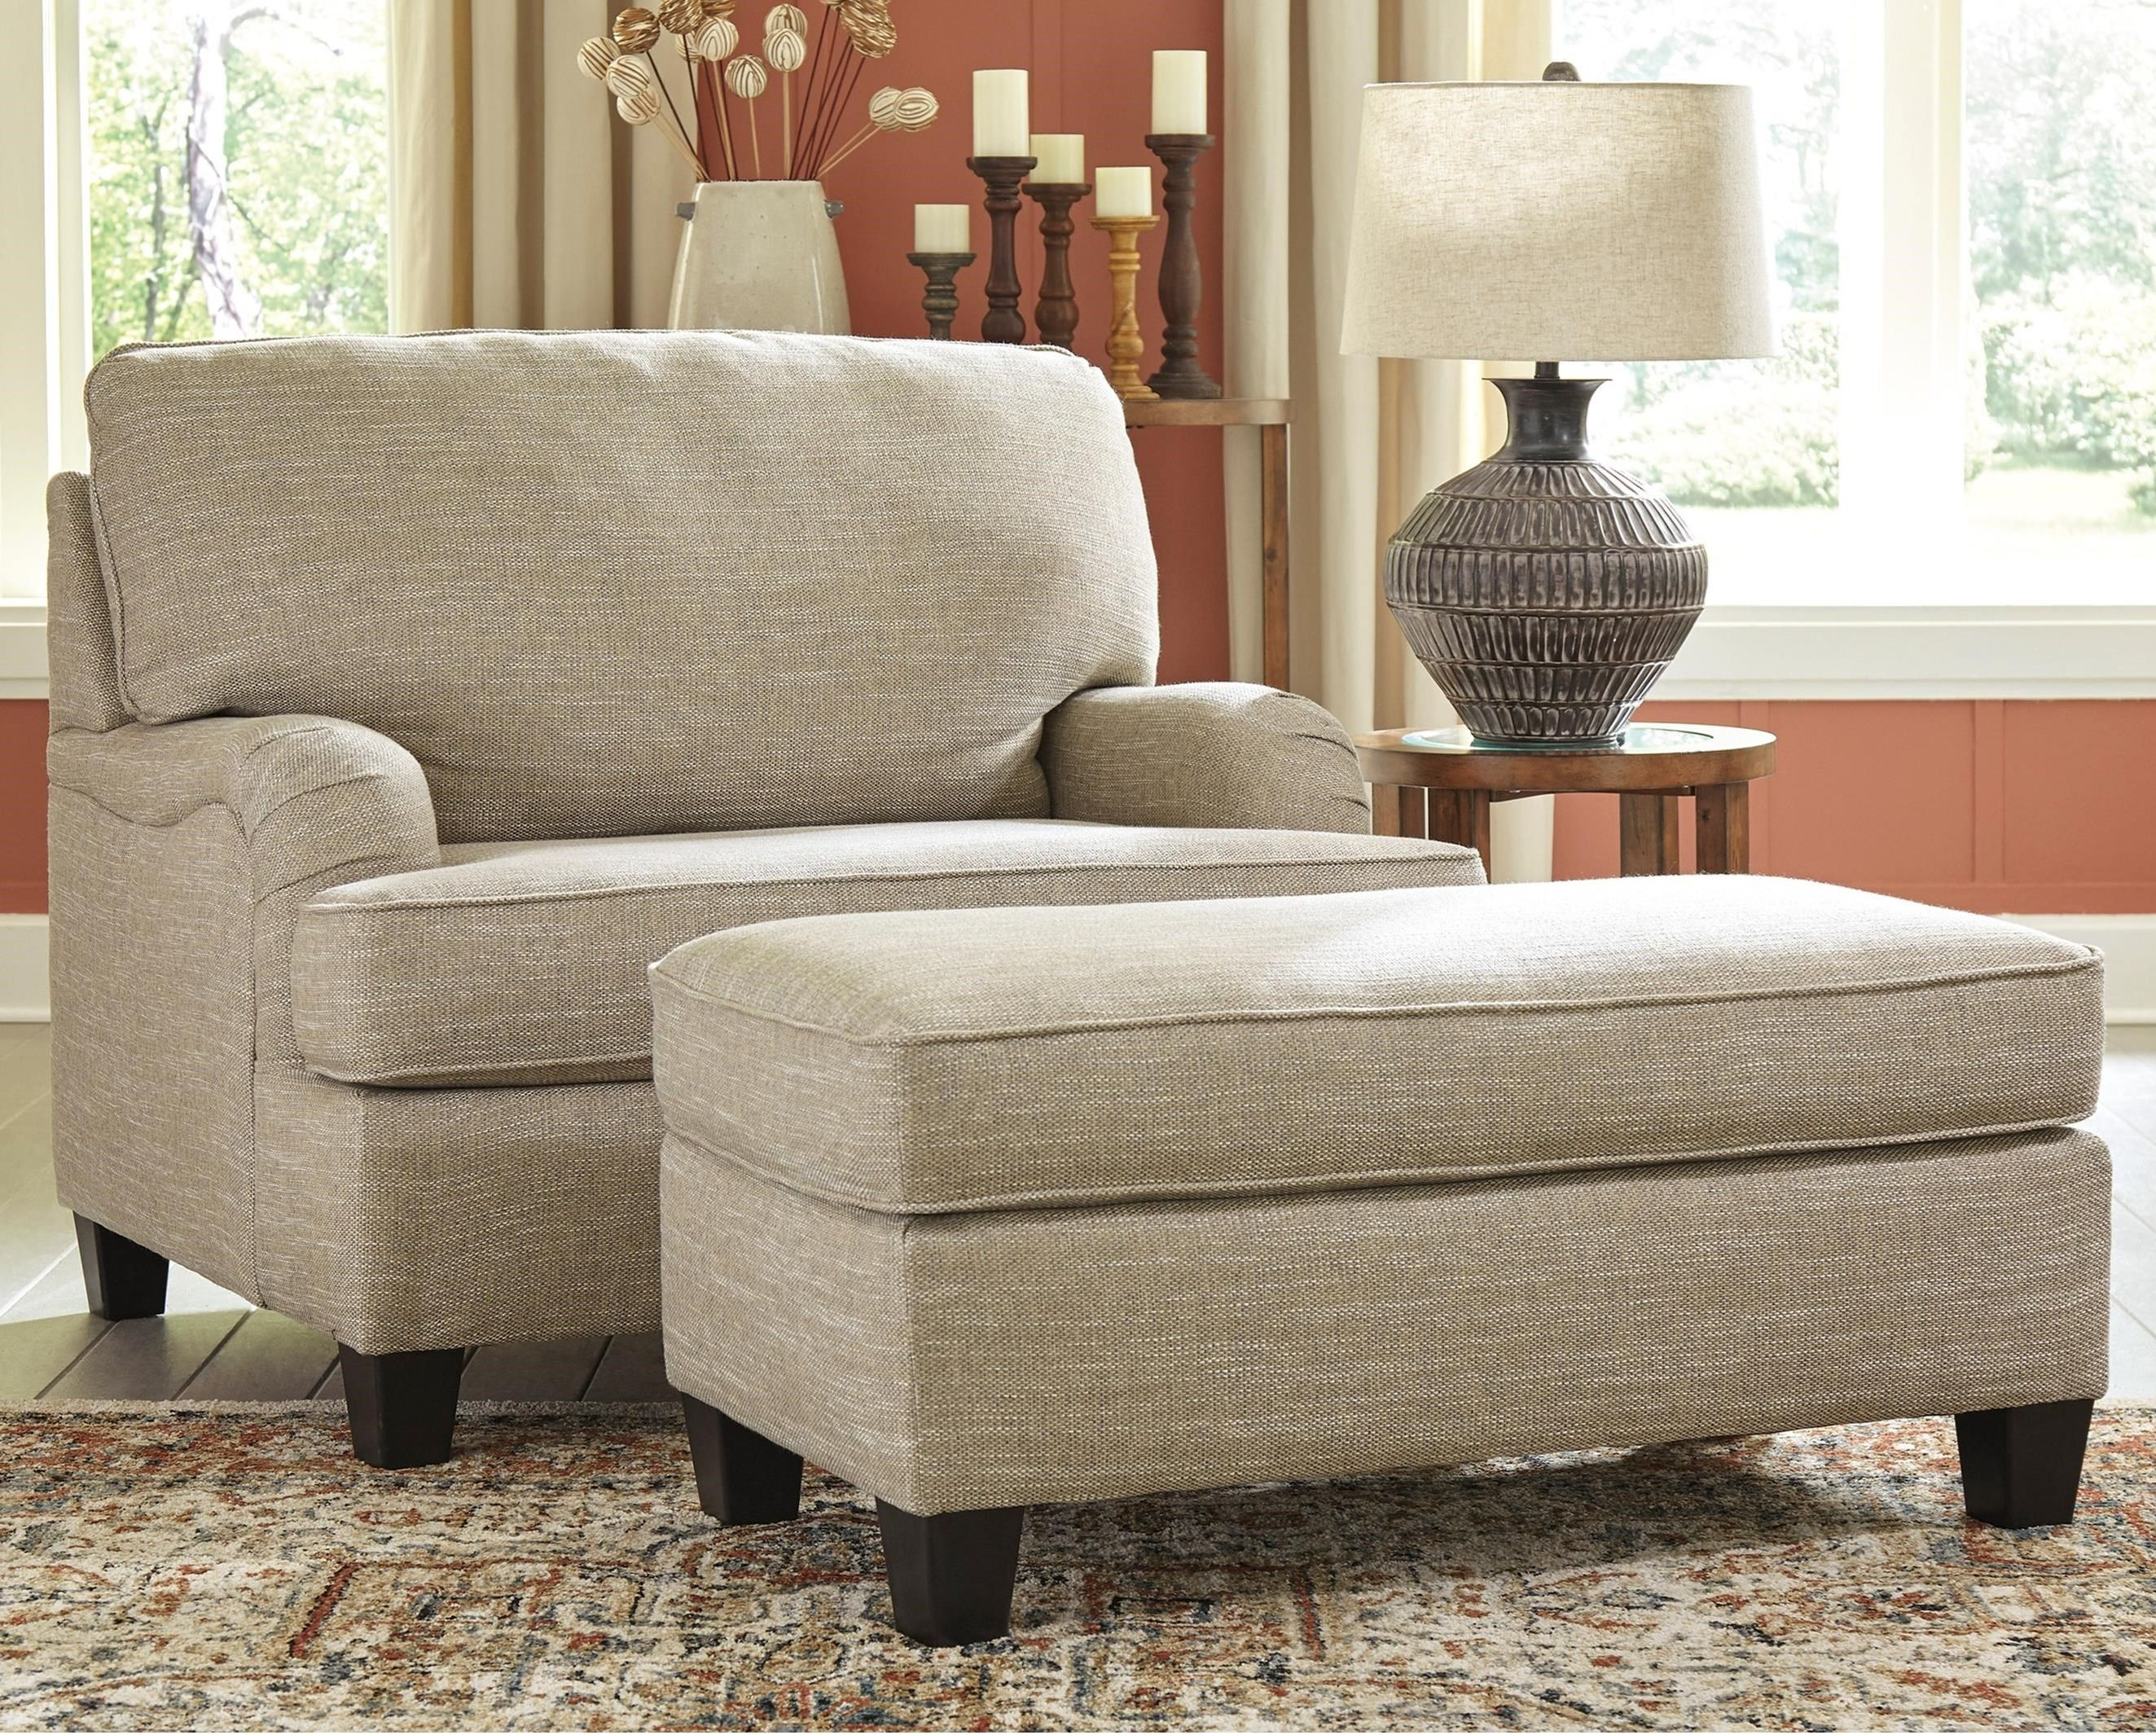 Almanza Chair And A Half And Ottoman By Signature Design At Fisher Home Furnishings In 2020 Chair And A Half Living Room Furniture Chairs Furniture